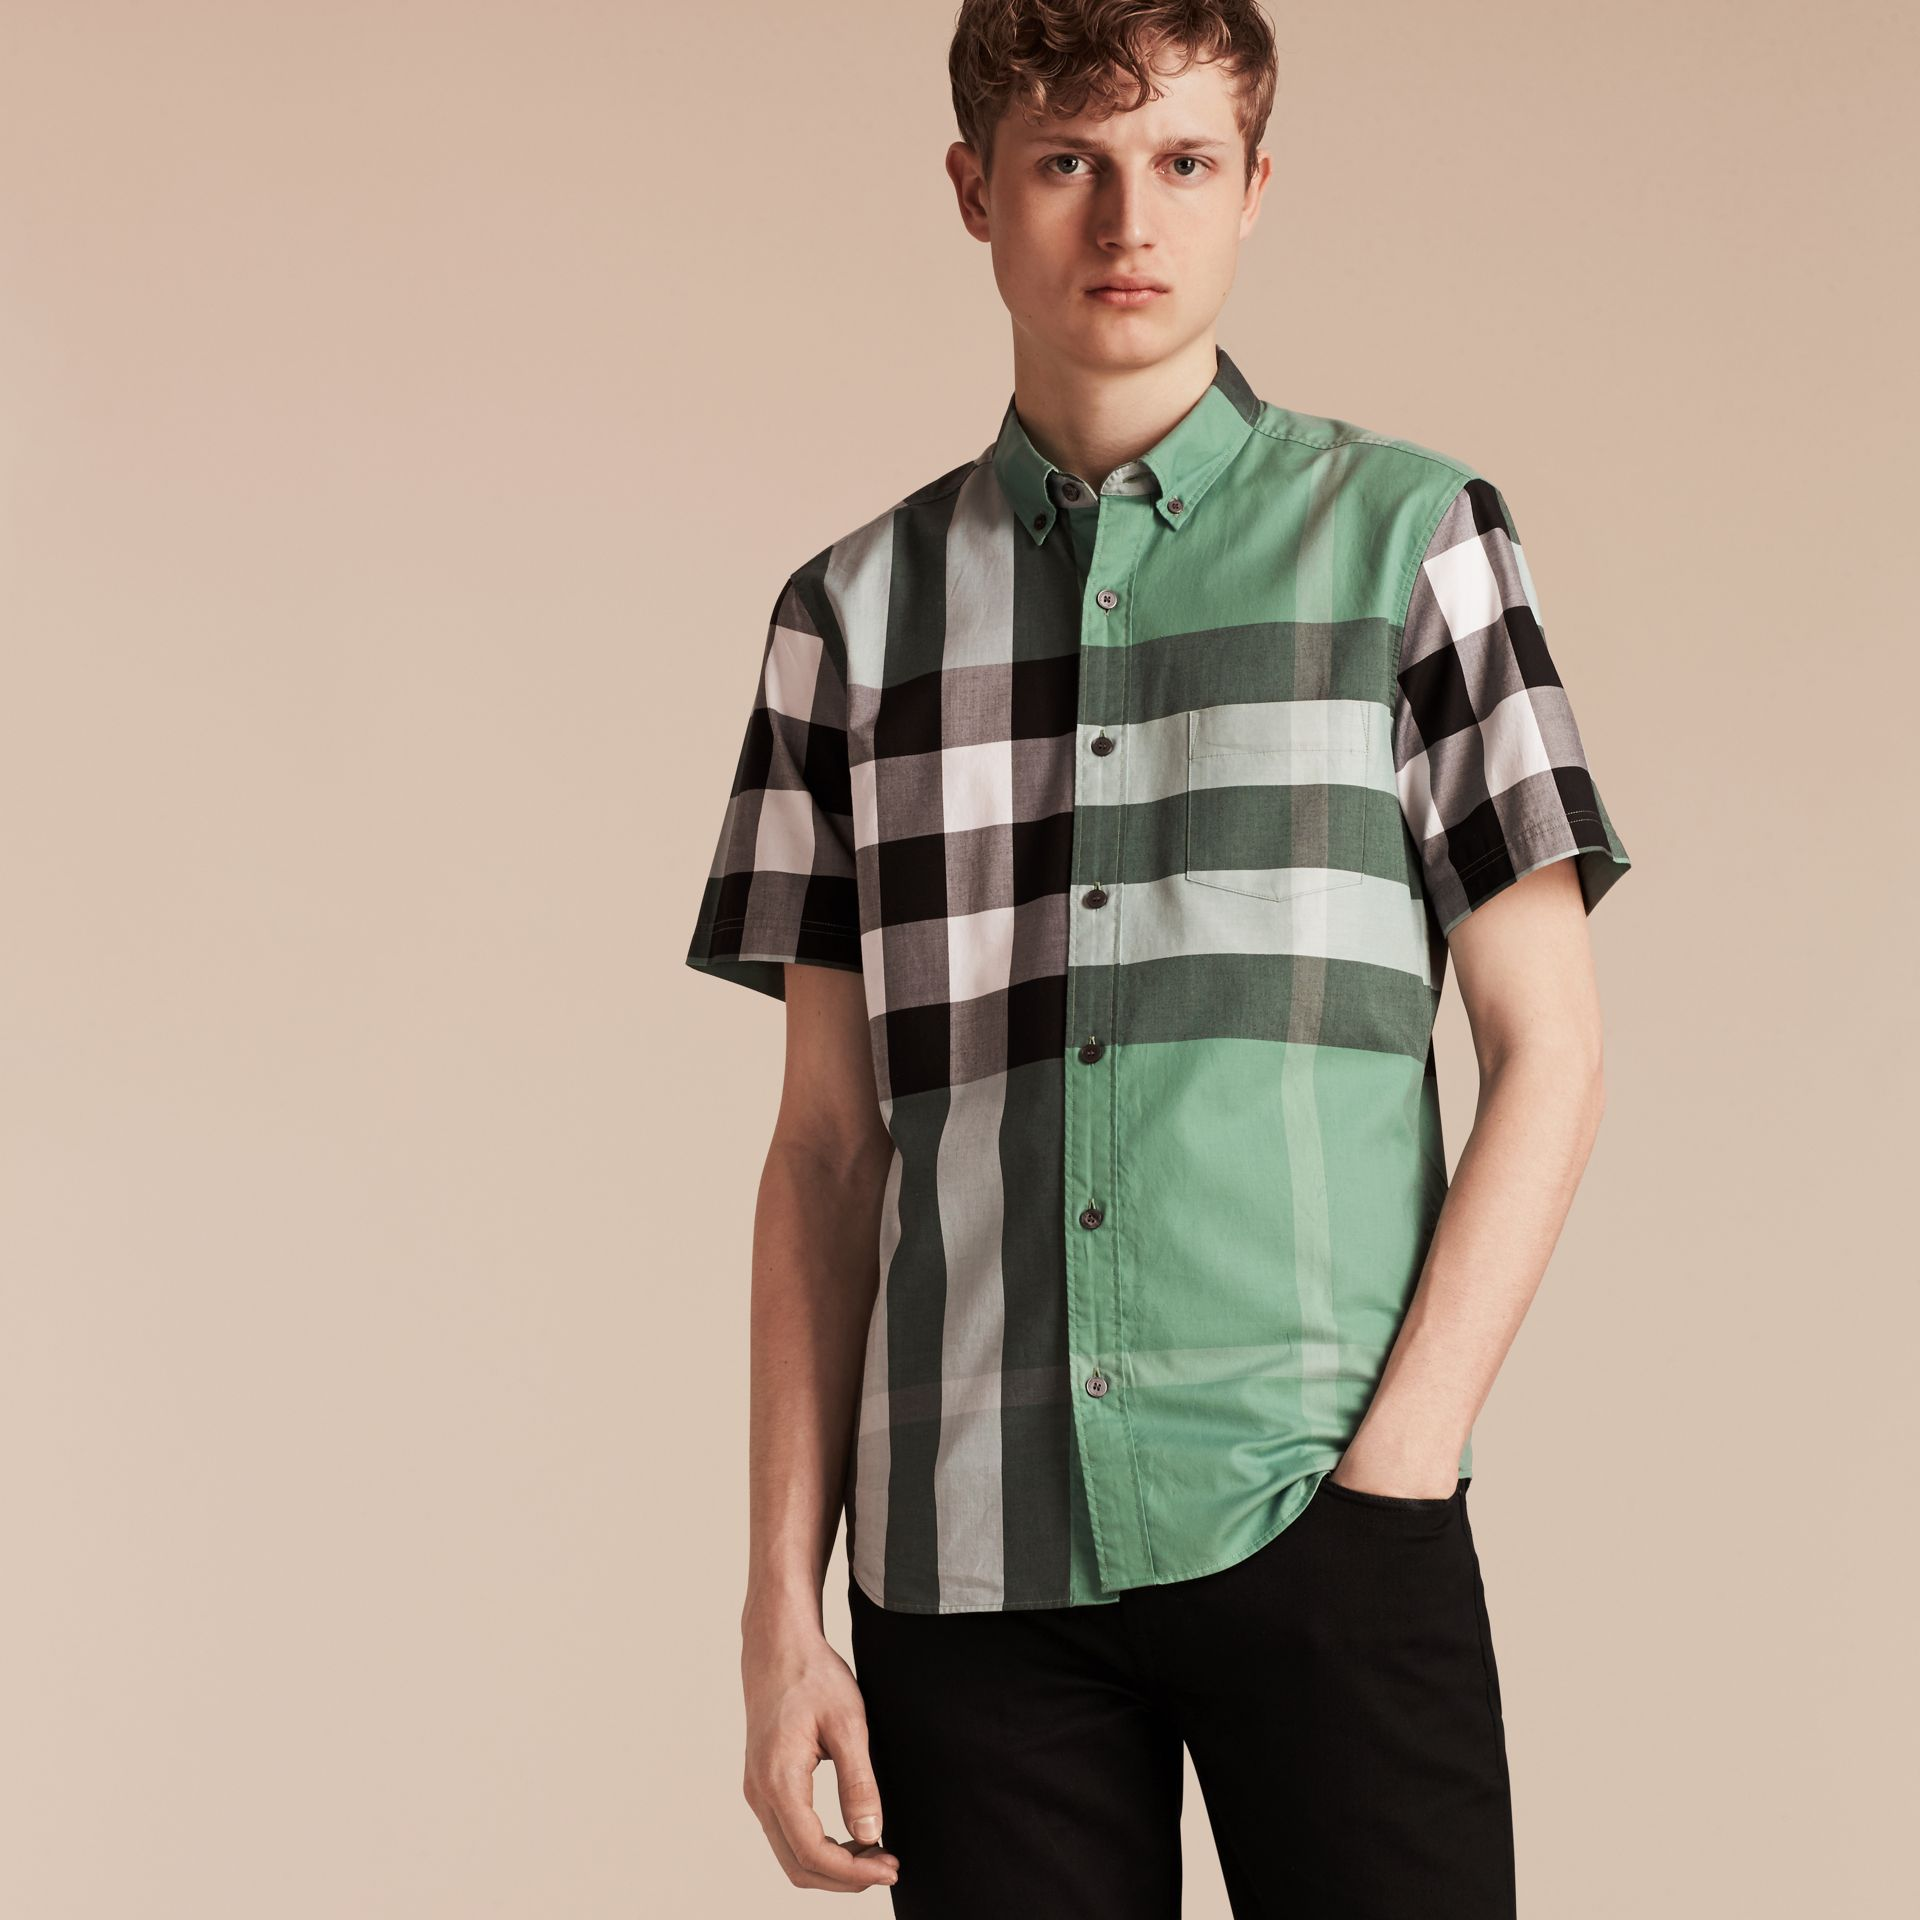 Aqua green Short-sleeved Check Cotton Shirt Aqua Green - gallery image 6